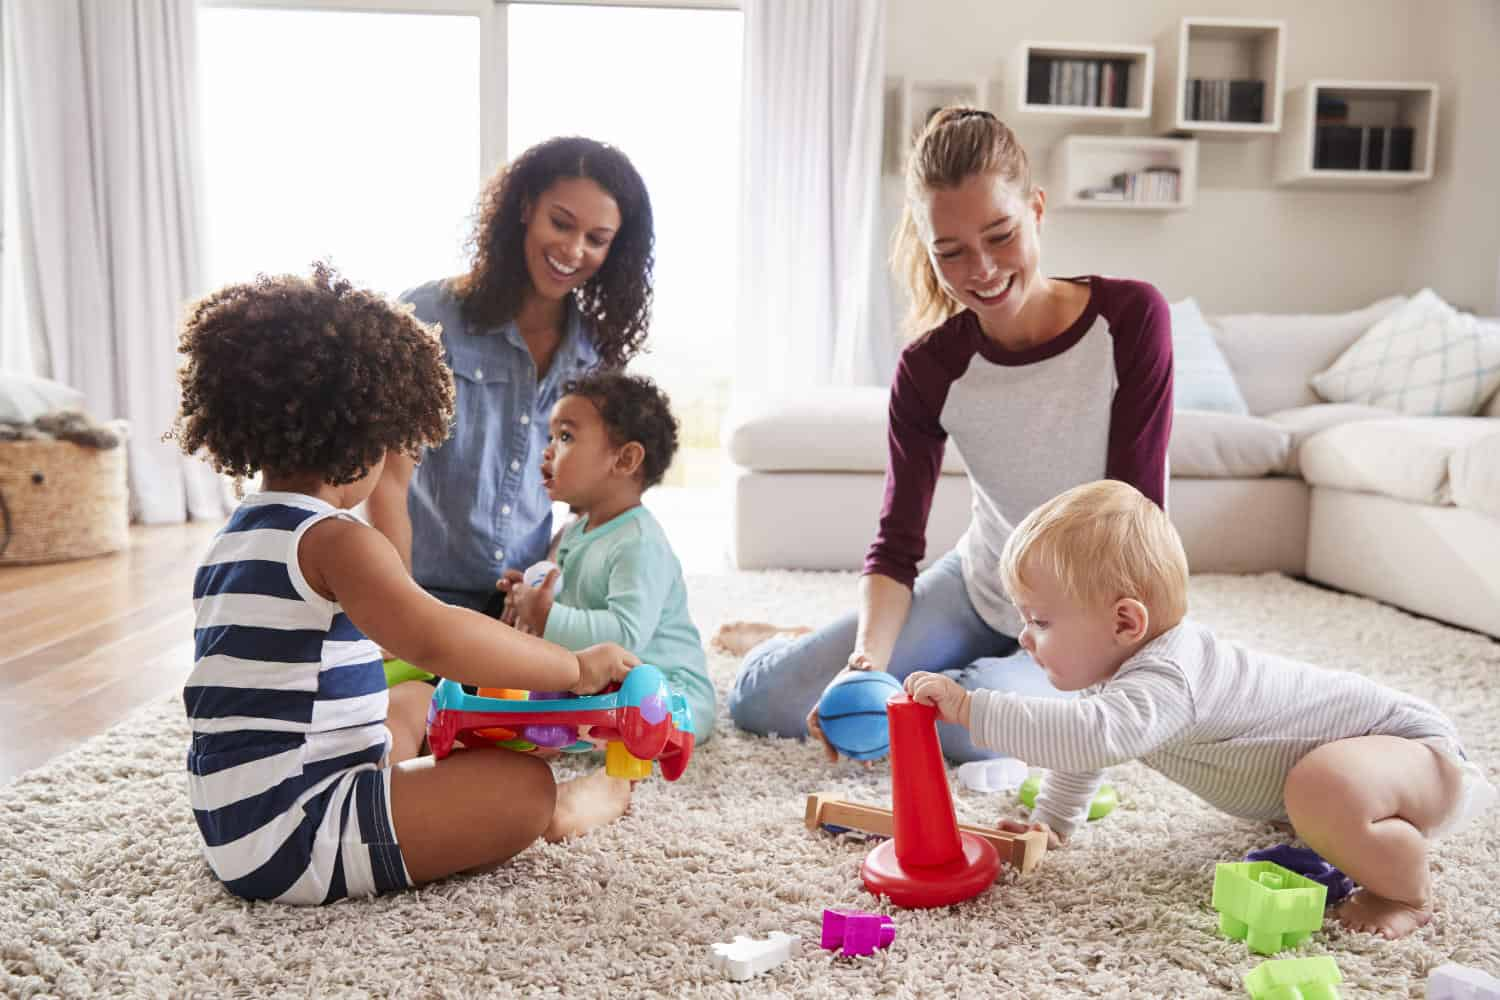 Photo of two friends playing with toddler kids on sitting room floor